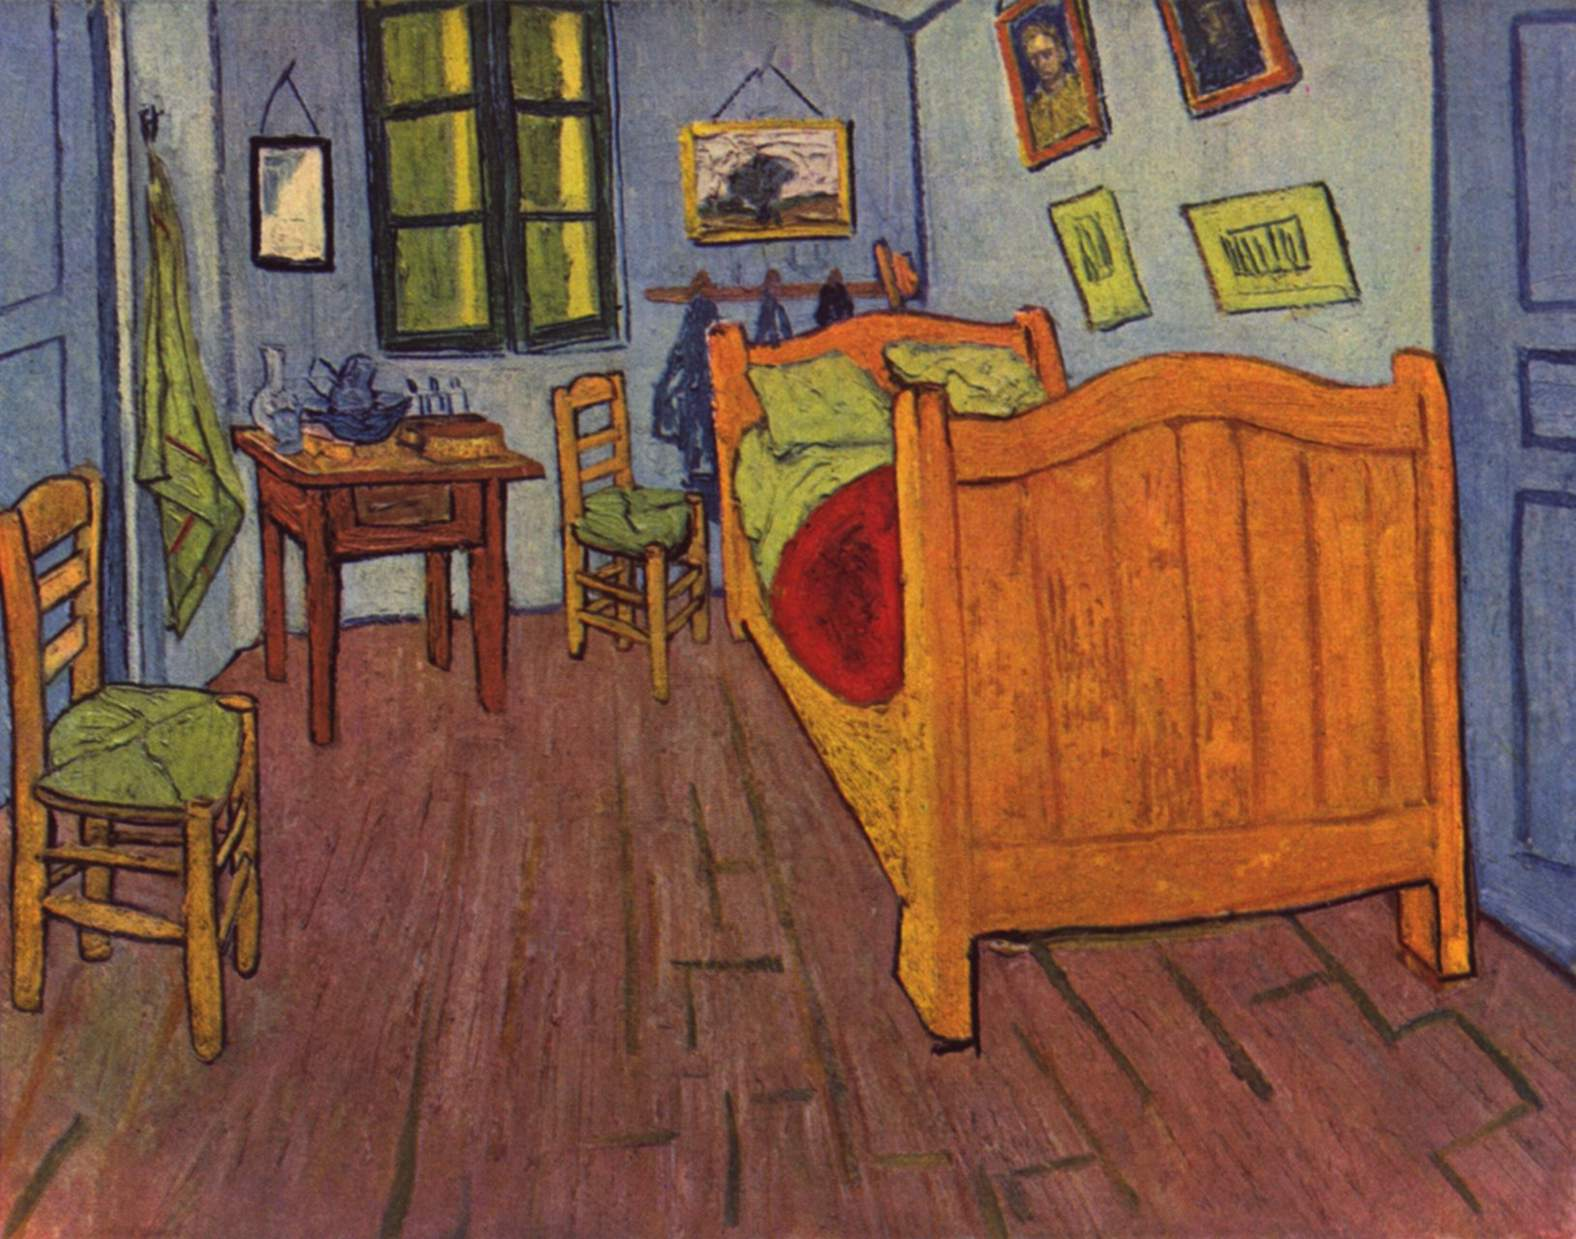 https://upload.wikimedia.org/wikipedia/commons/c/c8/Vincent_Willem_van_Gogh_137.jpg